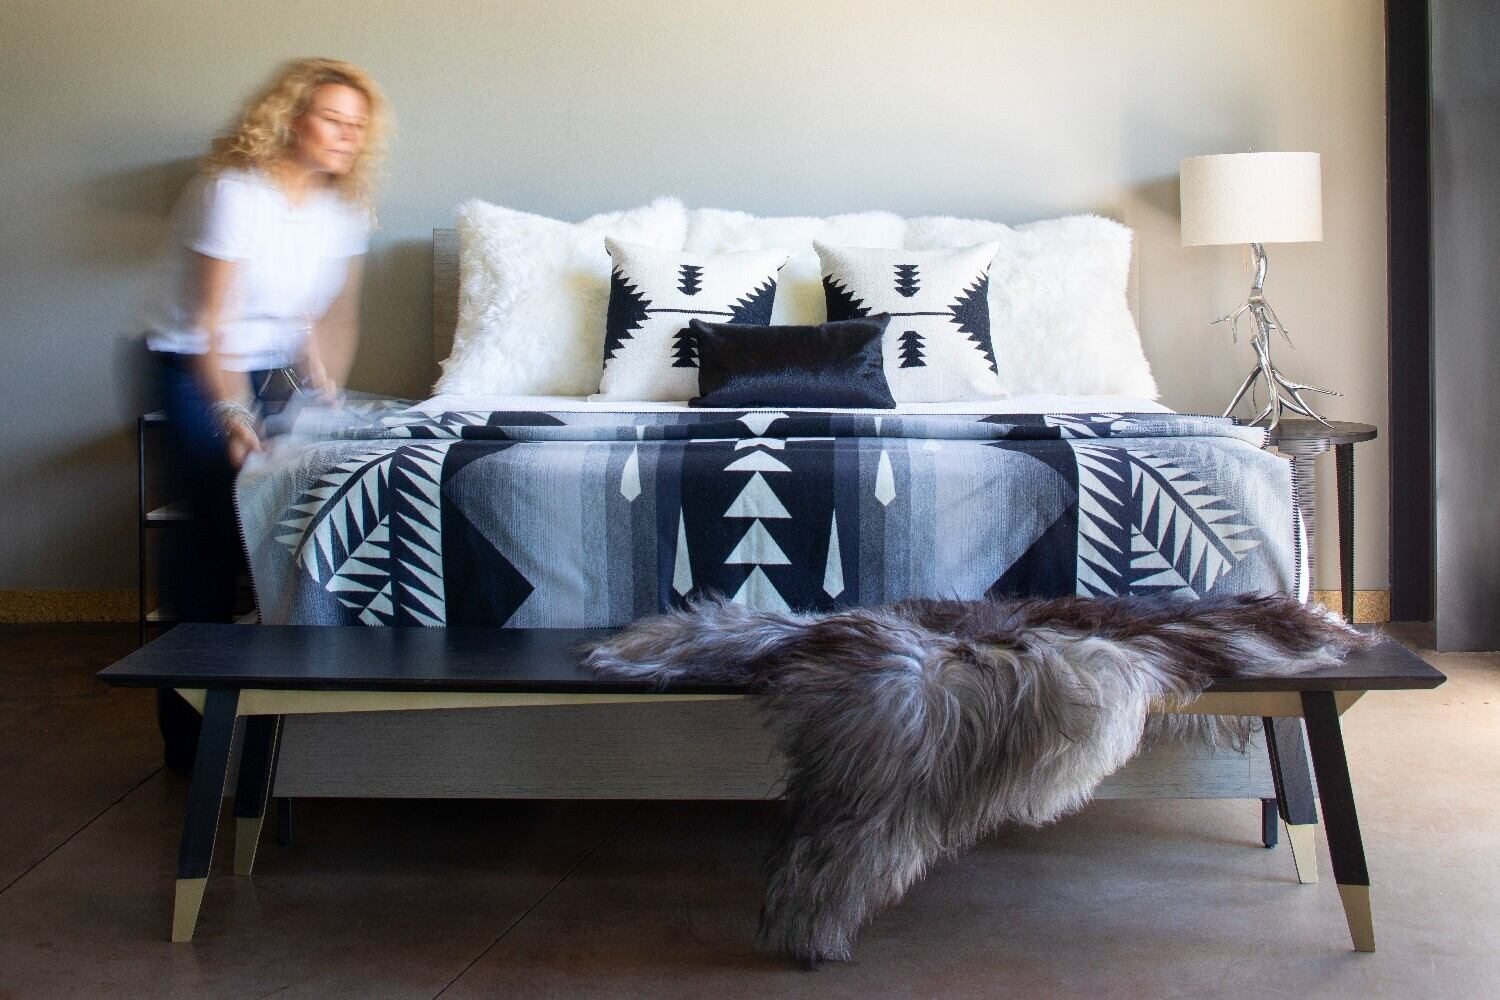 stel-house-and-home-steamboat-interiors-showroom-slide2